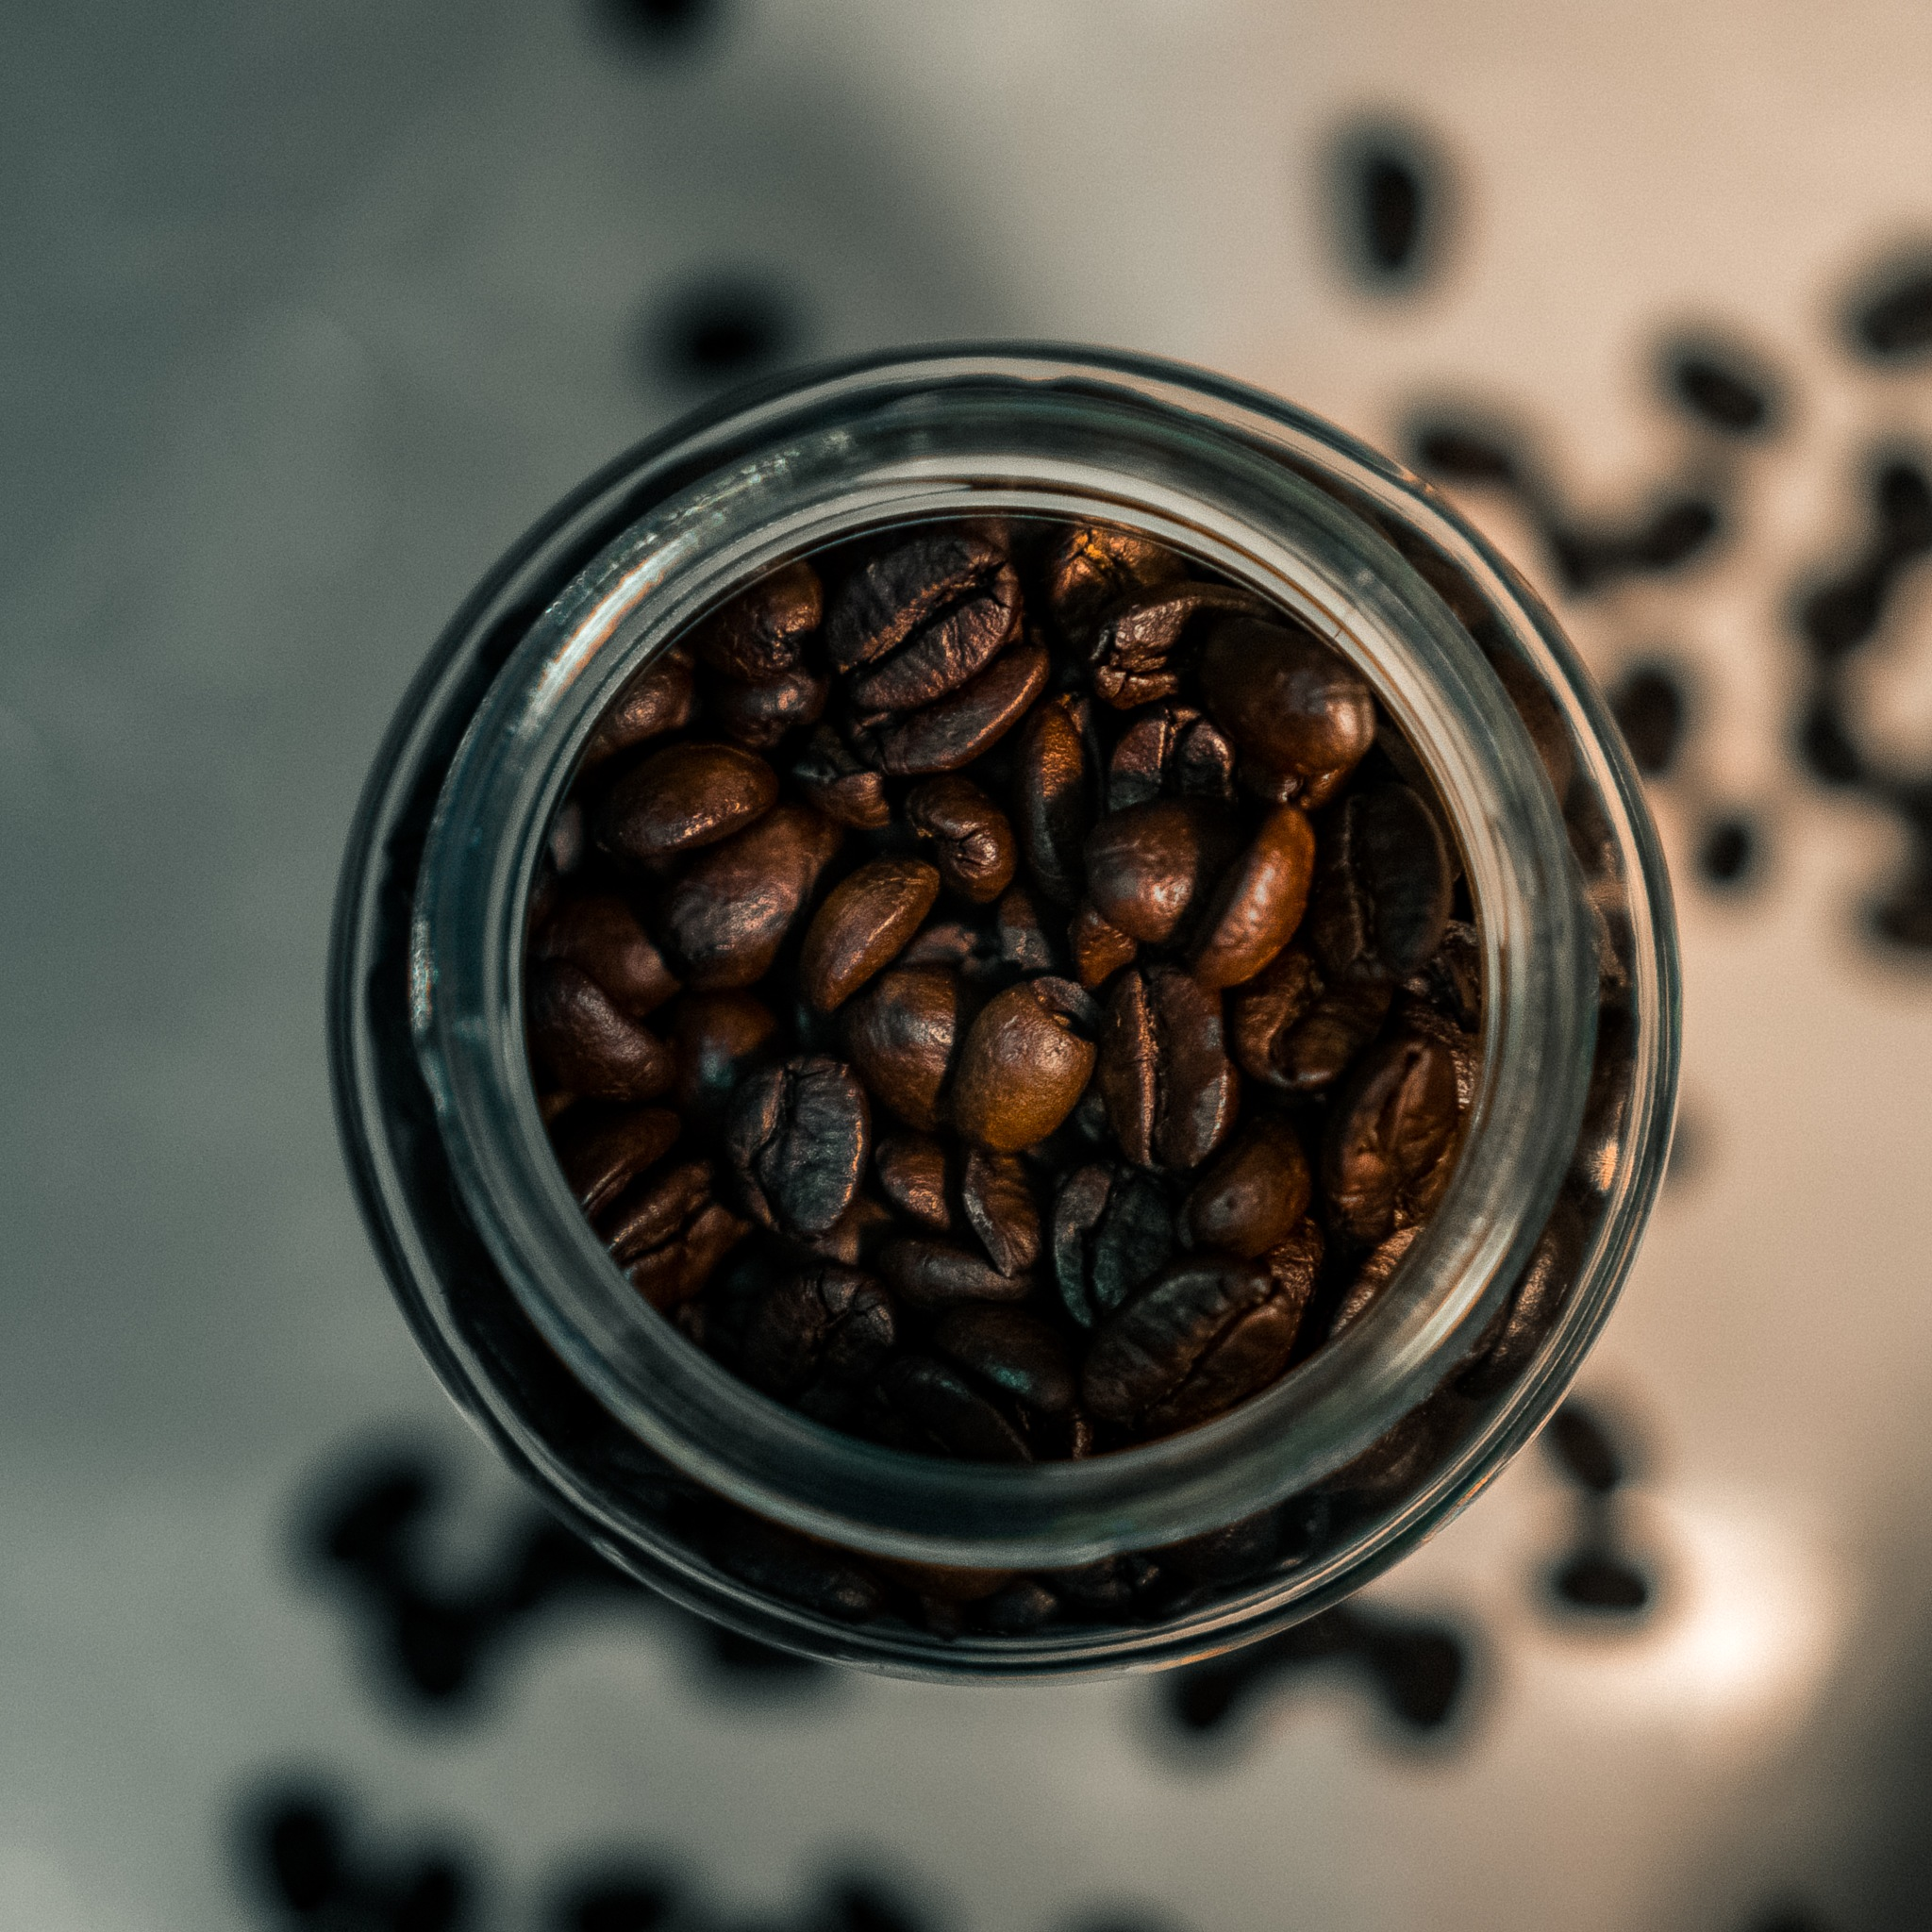 The coffee beans by Long Nguyễn